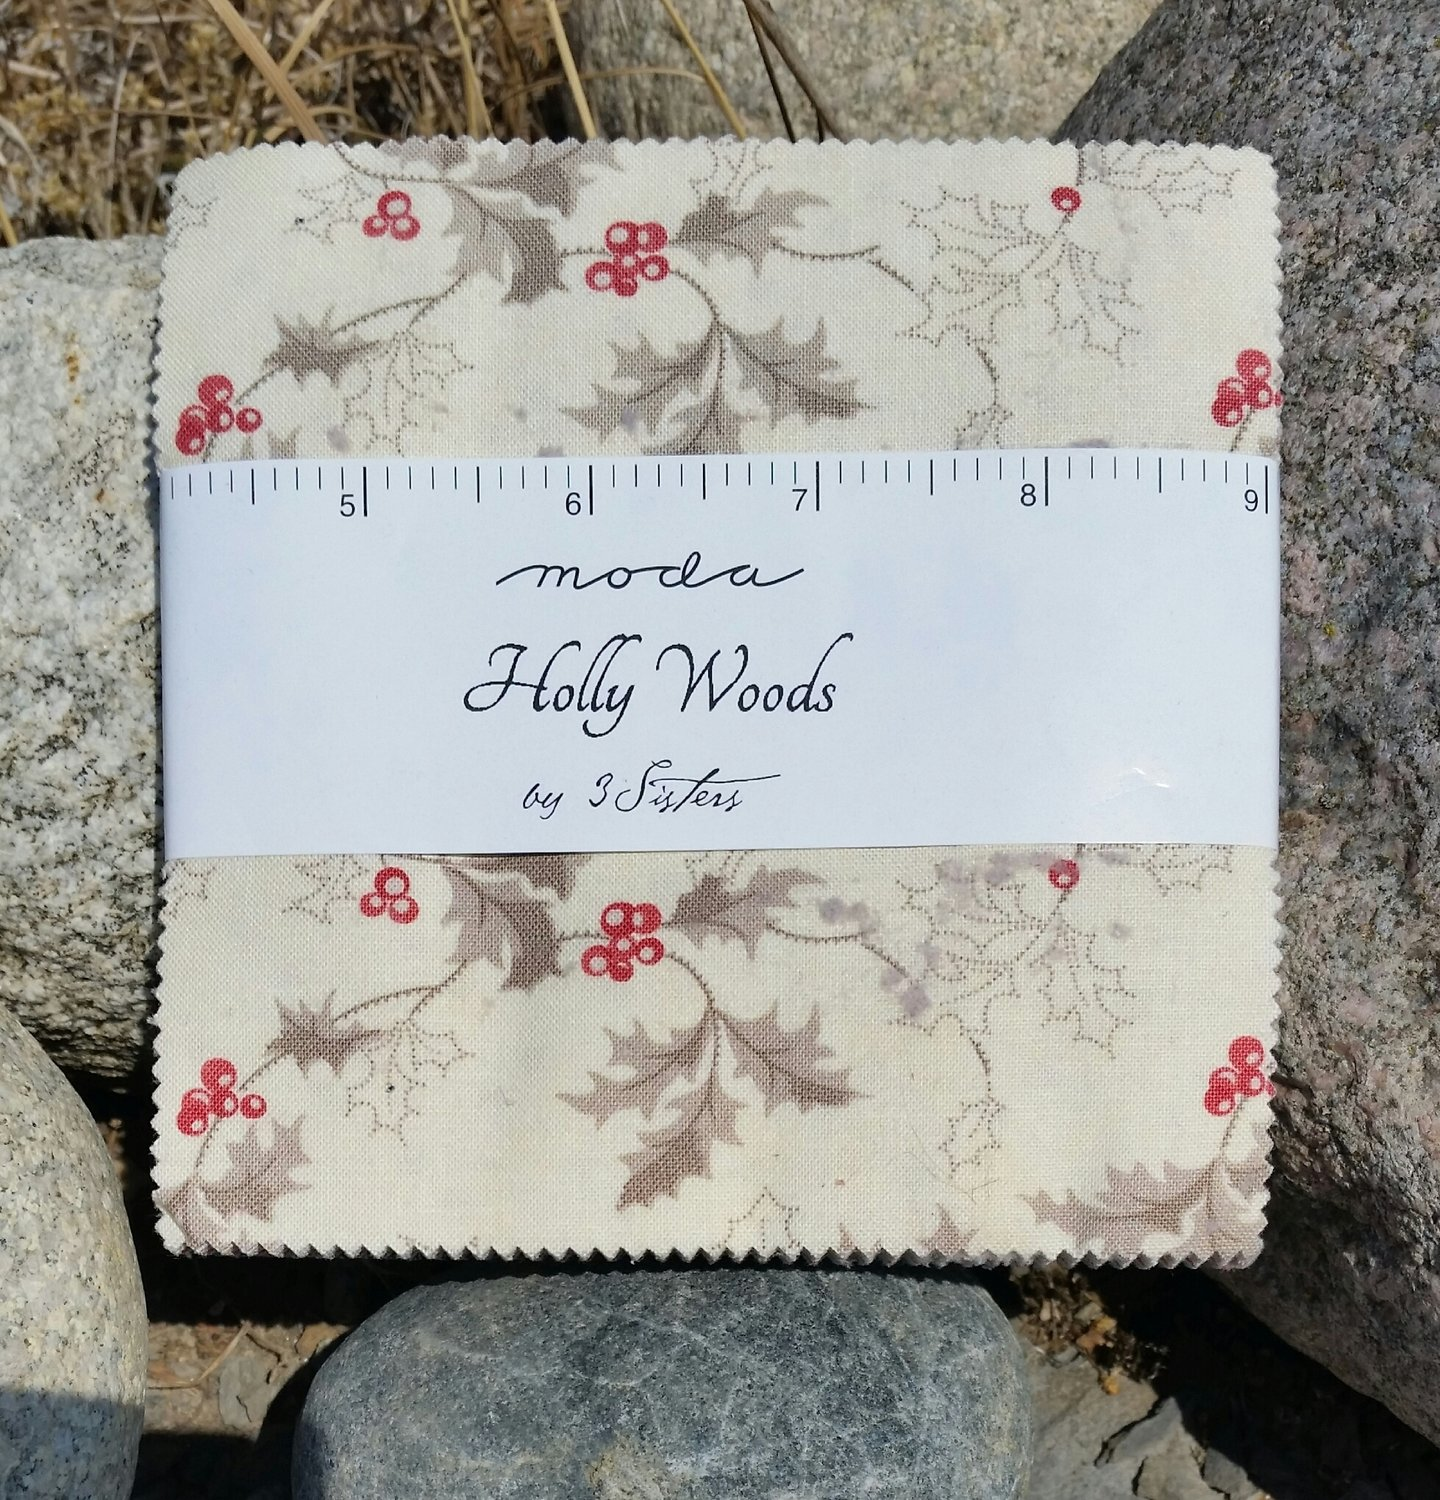 Holly Wood by 3 sister